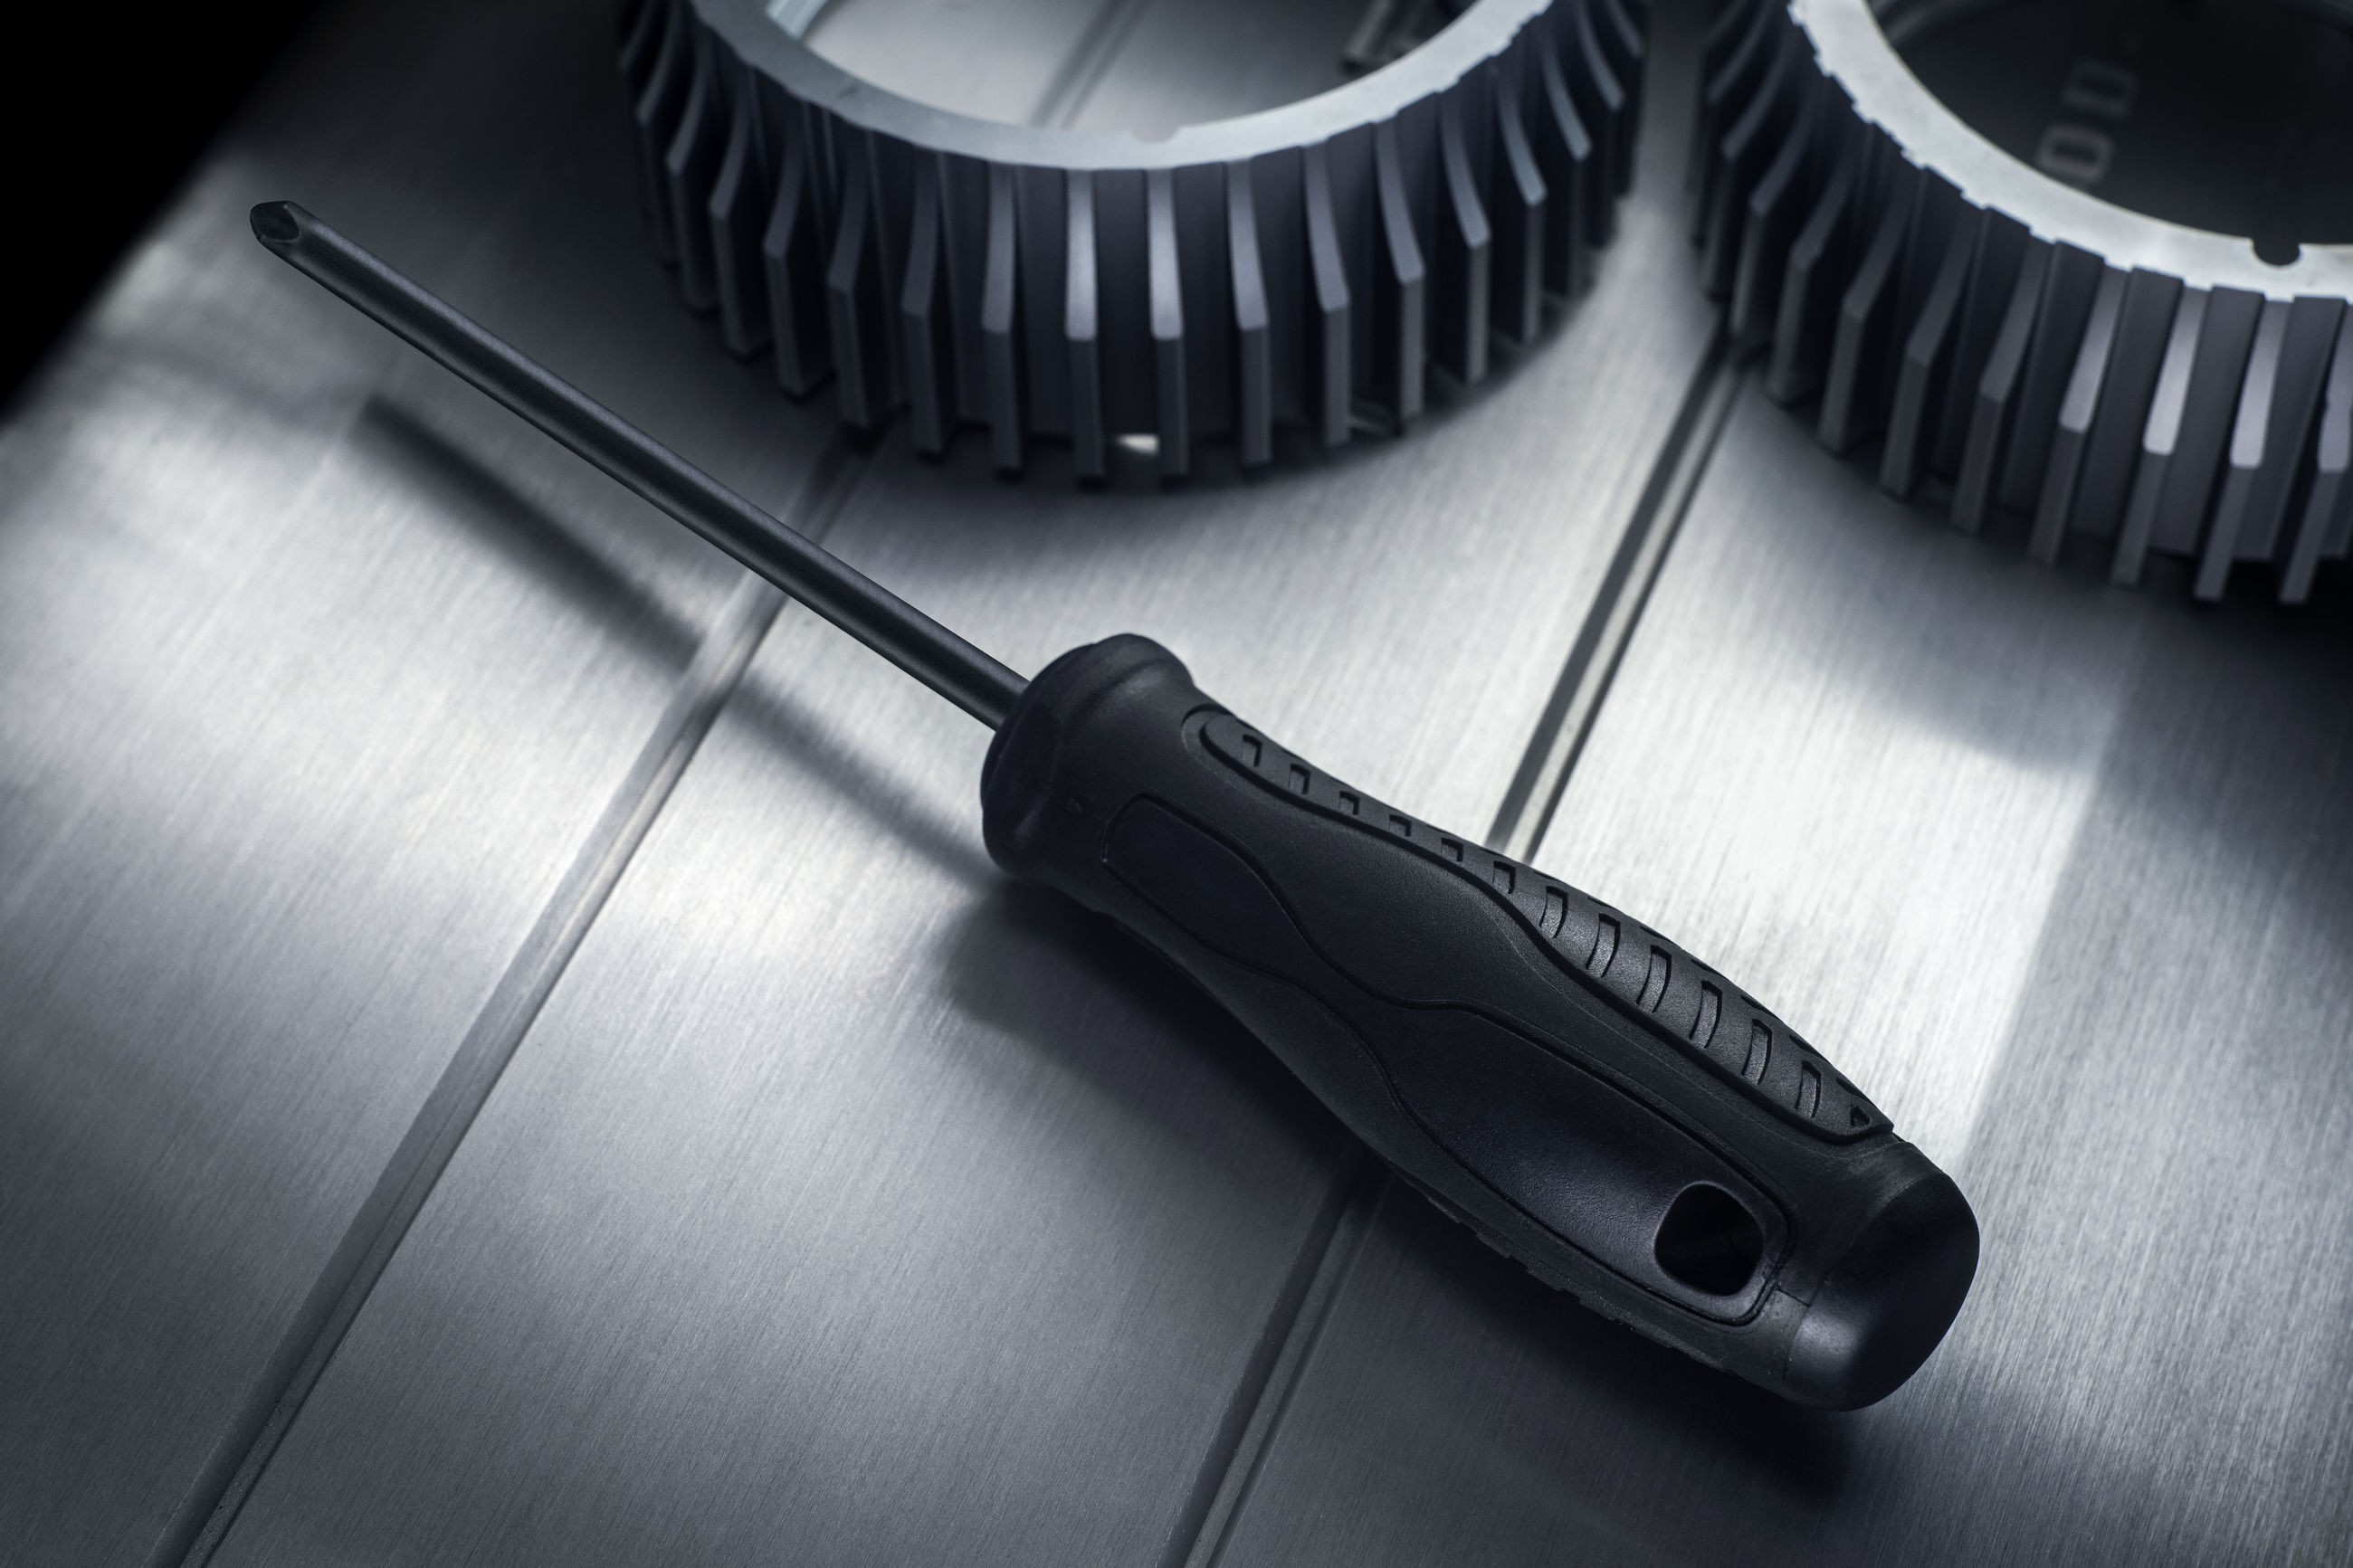 High angle view of screwdriver on table